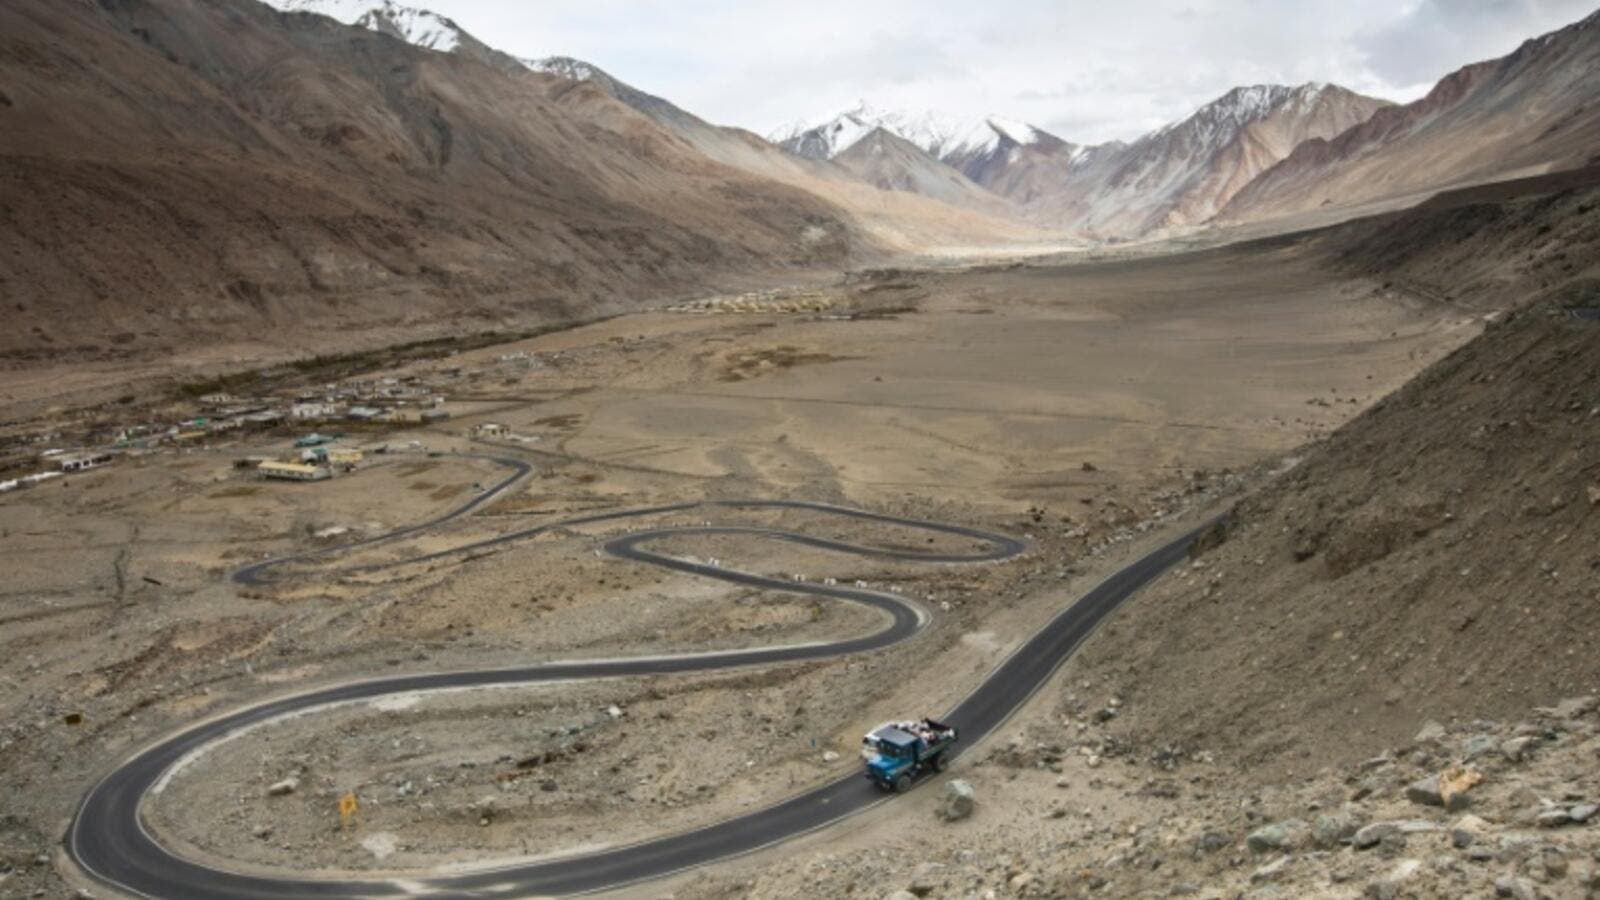 Ladakh, Kashmir borders the Chinese regions of Tibet to the east and Xinjiang to the north /AFP